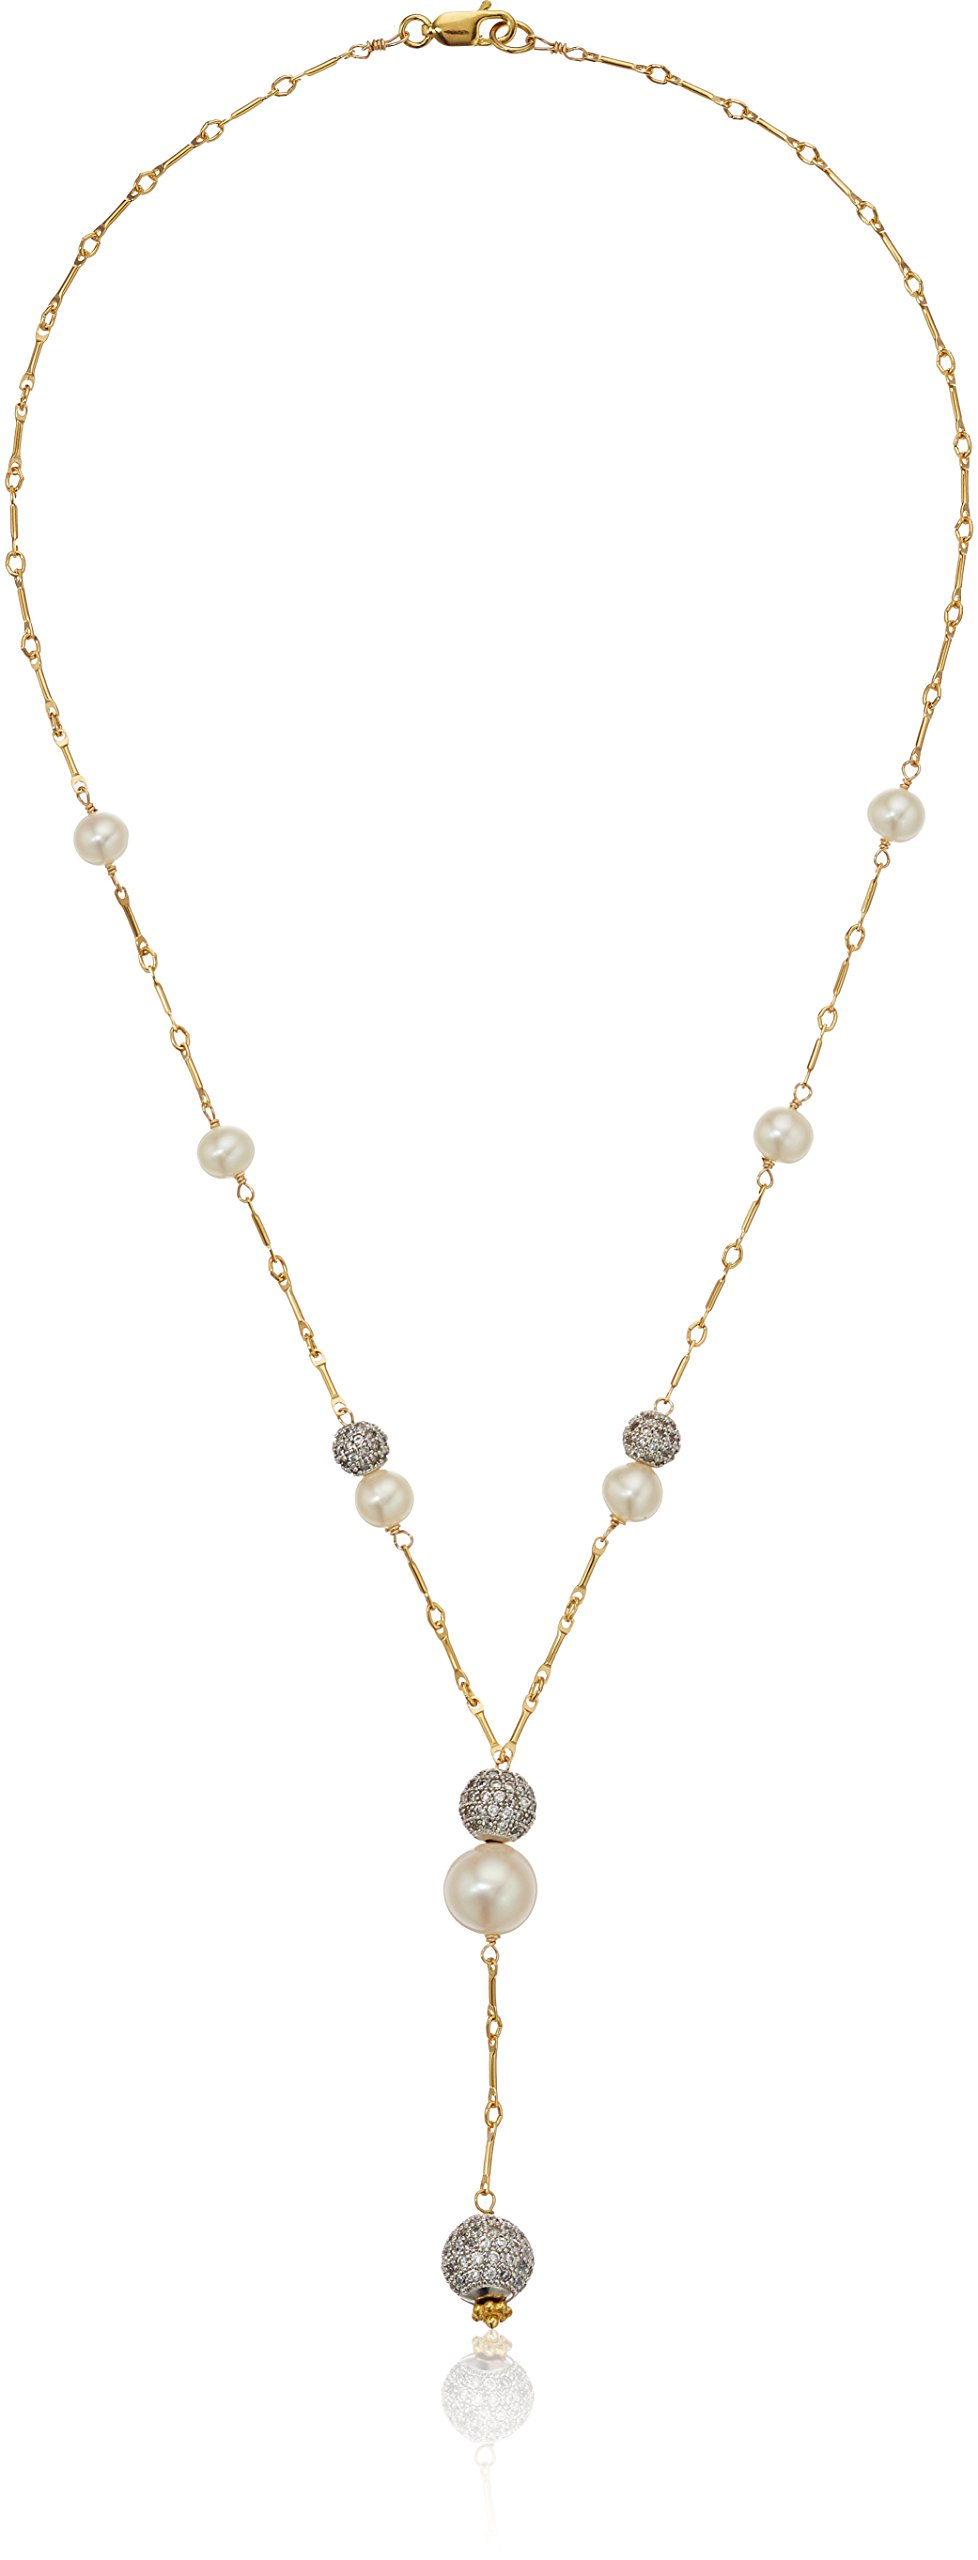 Gold Over Silver Bar Chain Necklace with Pave Cubic Zirconia and White Cultured Freshwater Pearl Stations Y-Shaped Necklace, 18''